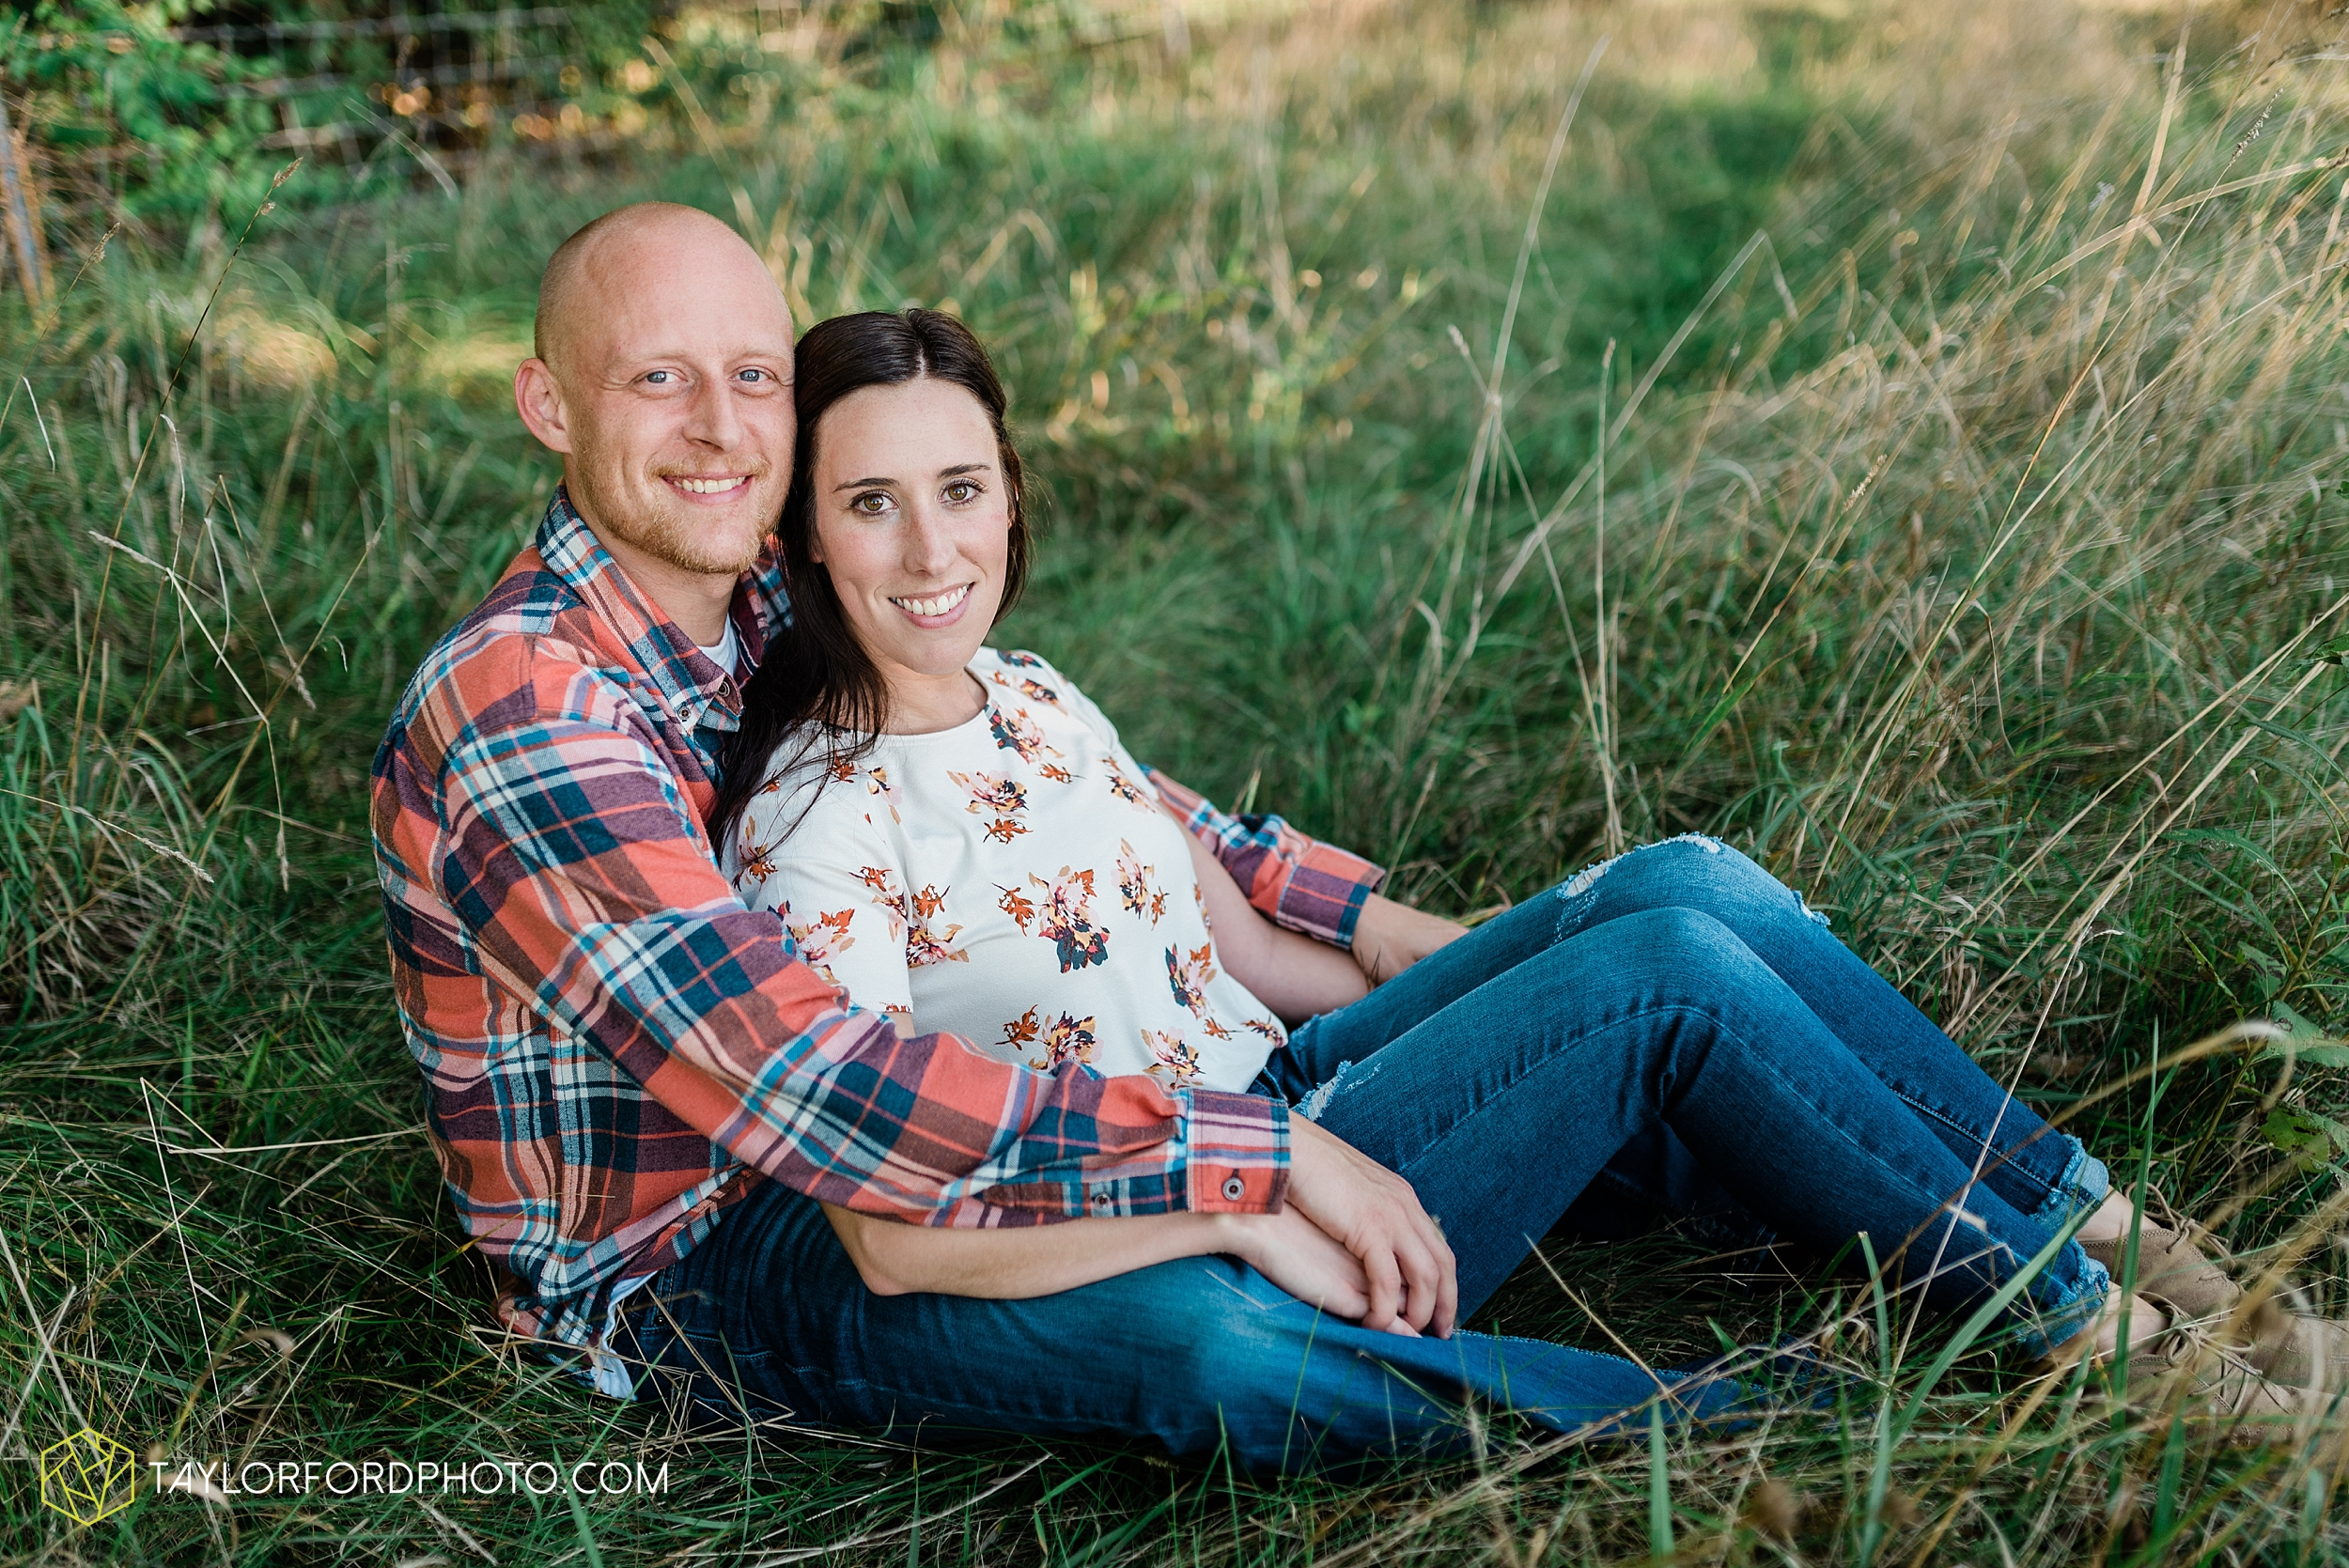 van-wert-ohio-late-summer-engagement-photographer-taylor-ford-photography_0354.jpg